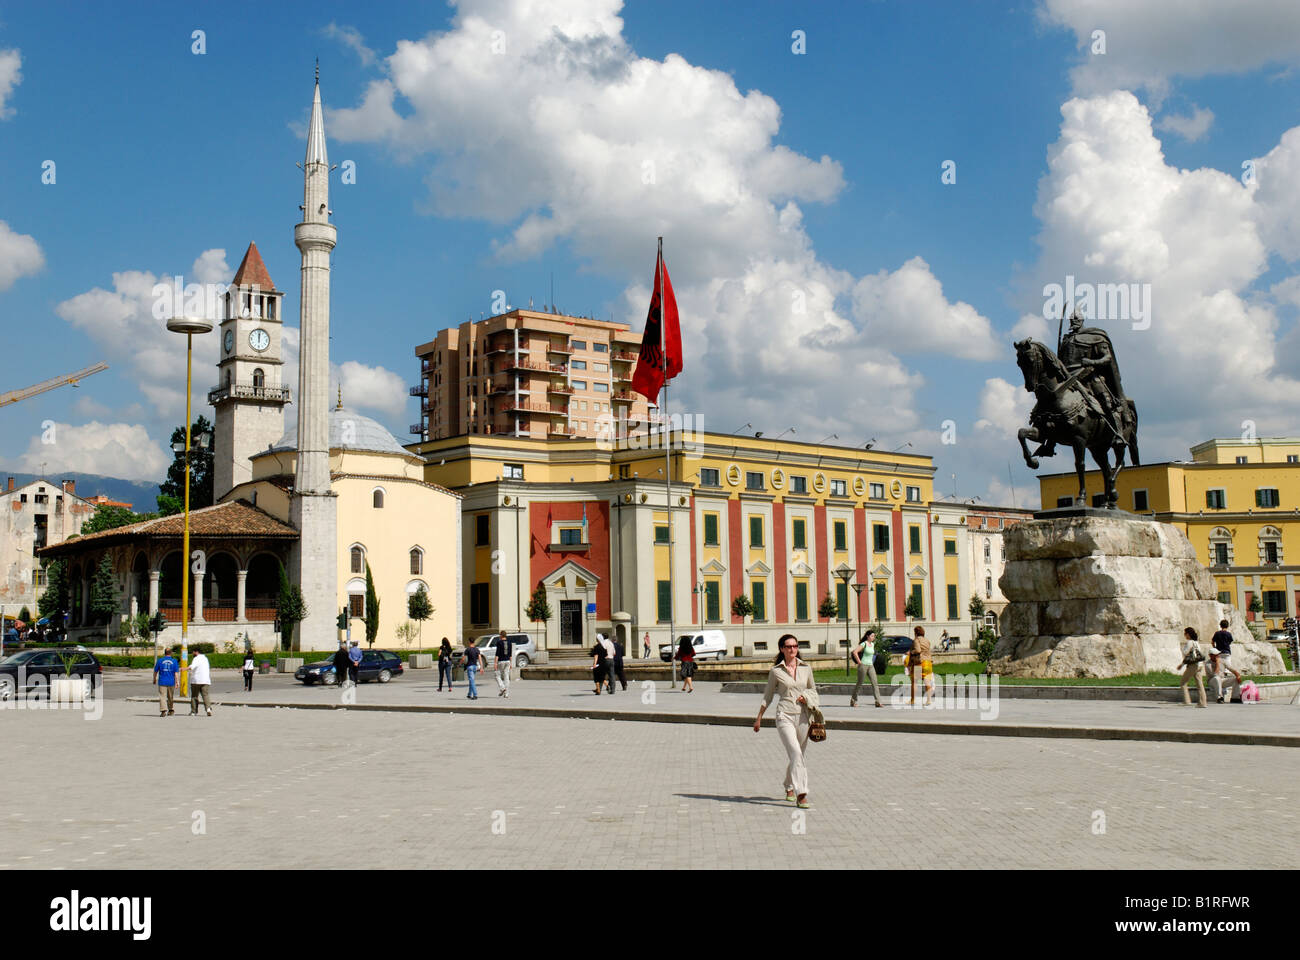 Skanderbeg Square in Tirana, Albania, Europe - Stock Image